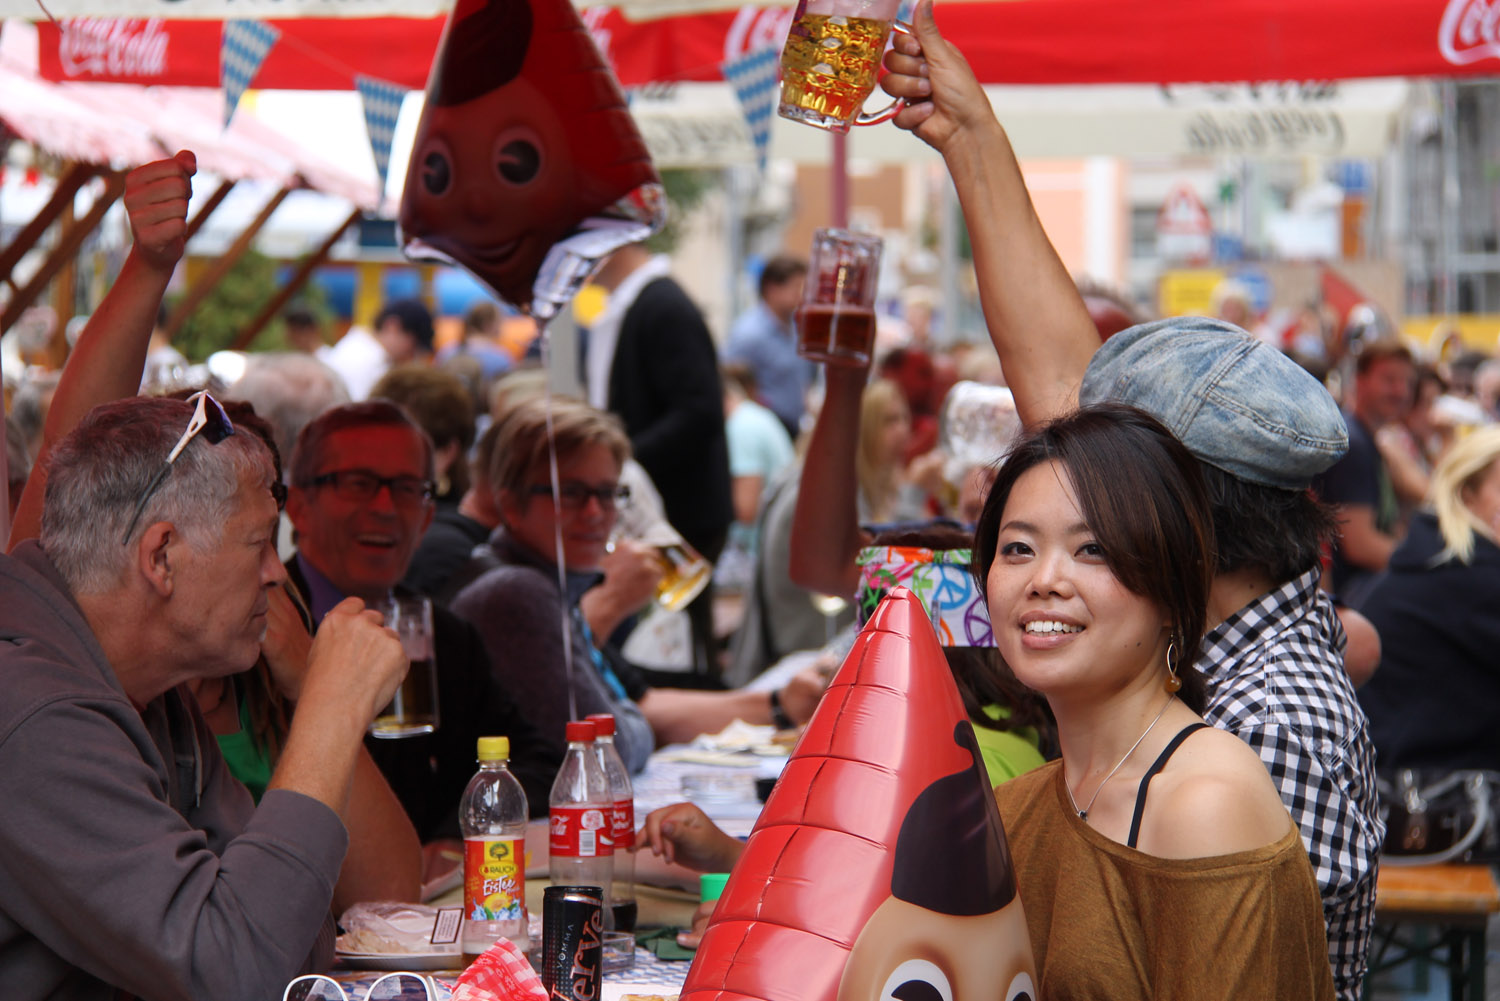 Das Oktoberfest des Marketingkreis Wilten West 2014 - 076